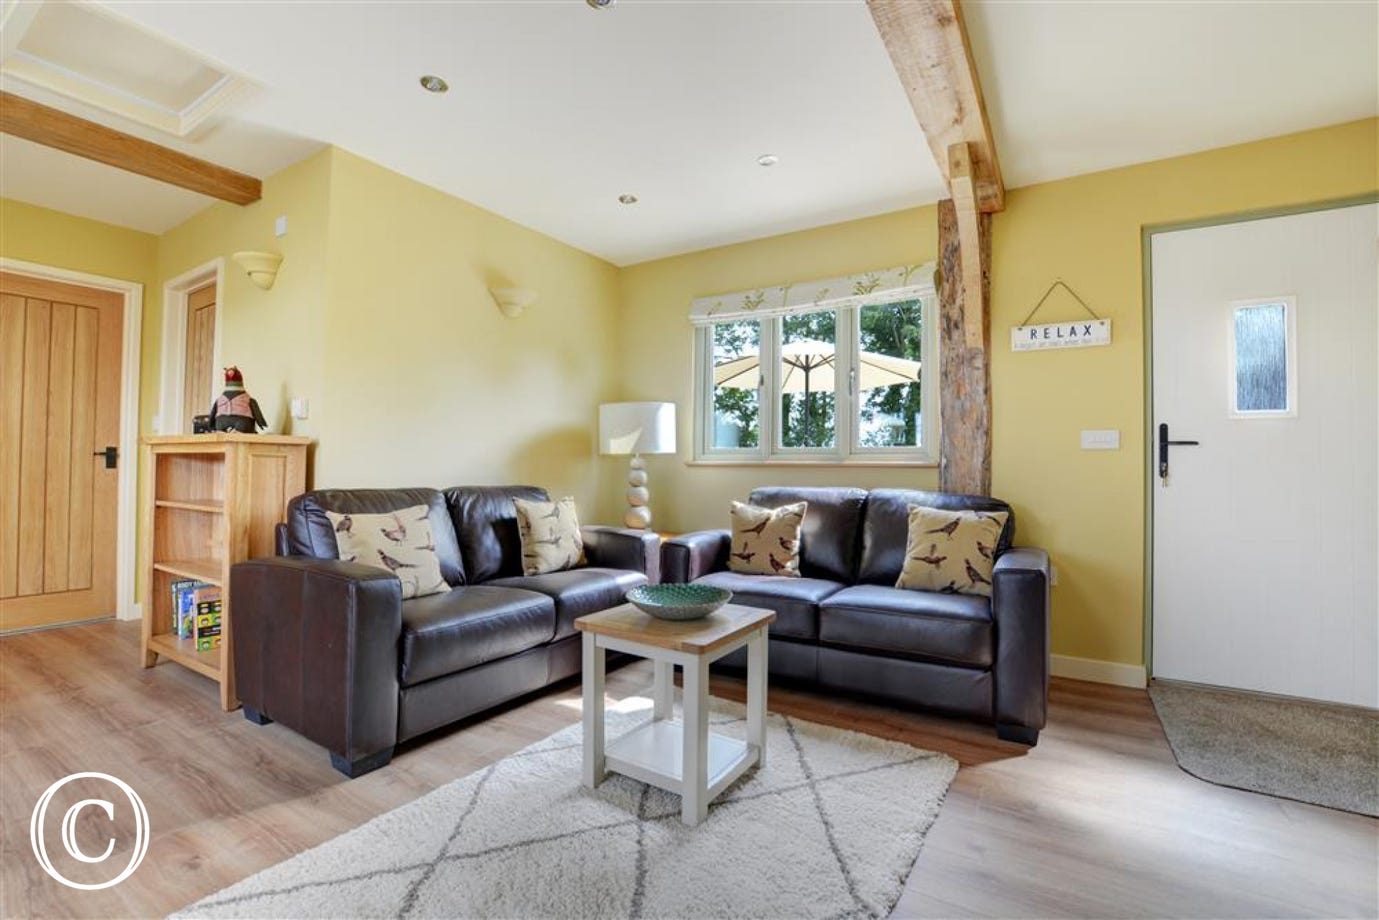 Sitting area within the spacious open plan living space